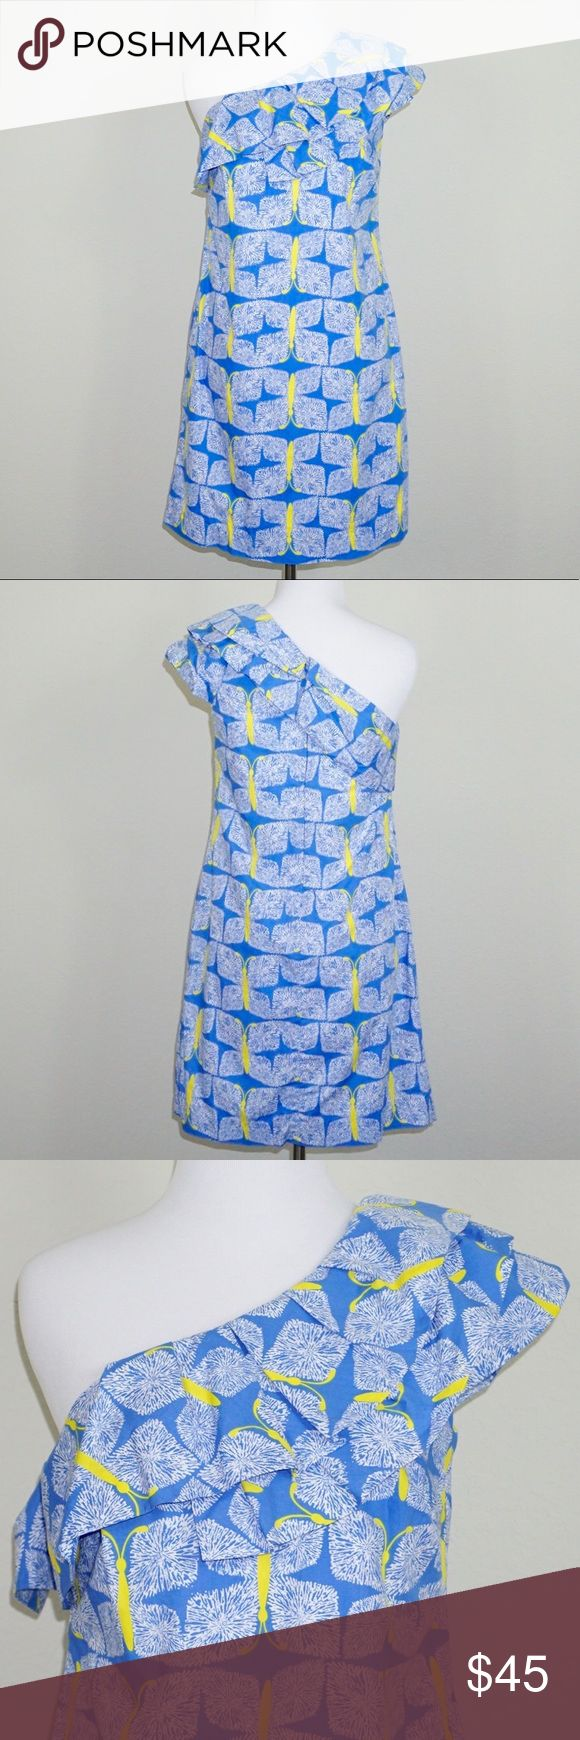 "Lilly Pulitzer Sandra Butterfly Print Dress ✨Condition: Excellent, Pre-owned ✨Measurements (approx. when flat): Length 34"". Pit to Pit 15"" ✨Features: Hidden zipper in back. Fully lined.  ✨Feel free to make an offer -or- Add to Bundle to receive an exclusive discount! Lilly Pulitzer Dresses One Shoulder"